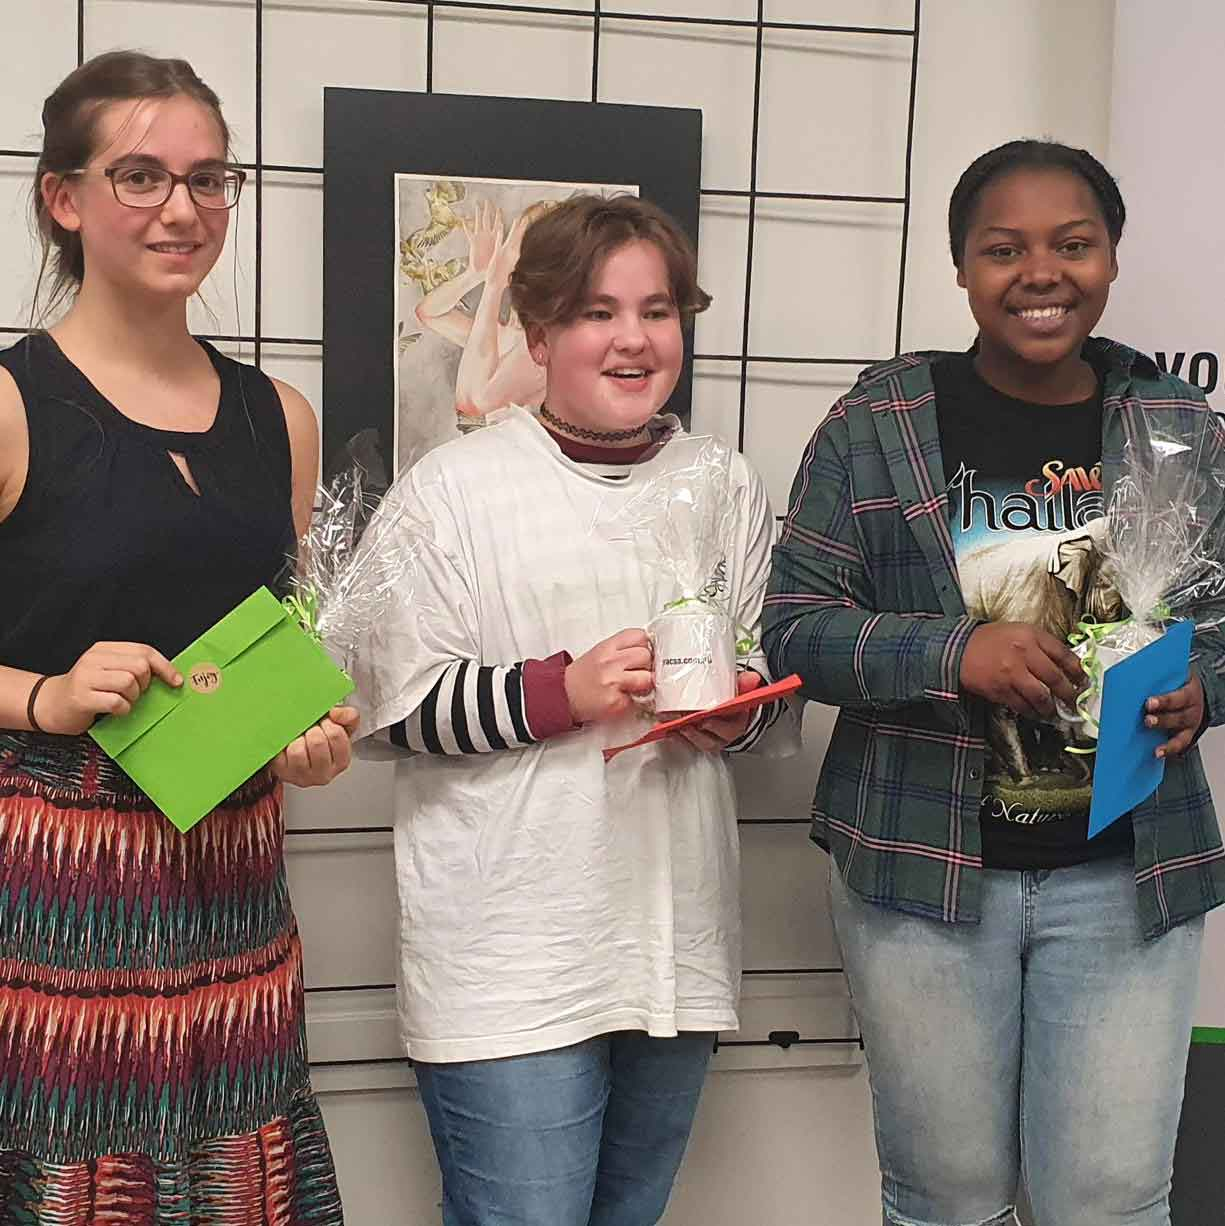 All Youth Week artwork winners (L-R) Levant, 17 (3rd Prize), Sophie, 14 (2nd Prize), Faraja, 17 (1st Prize)